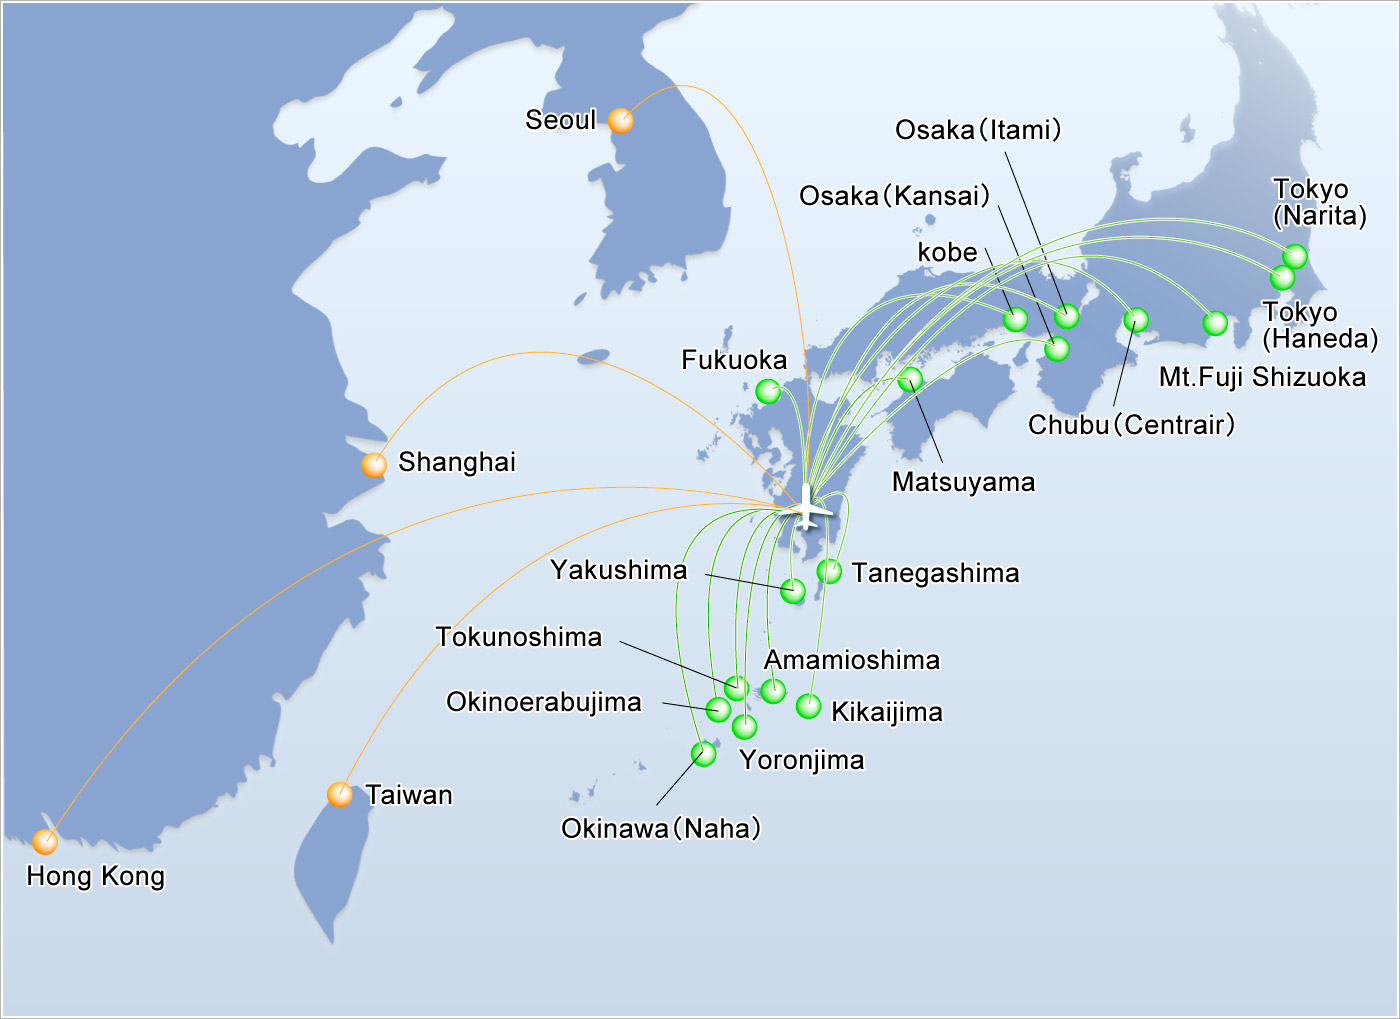 flight map route choice image